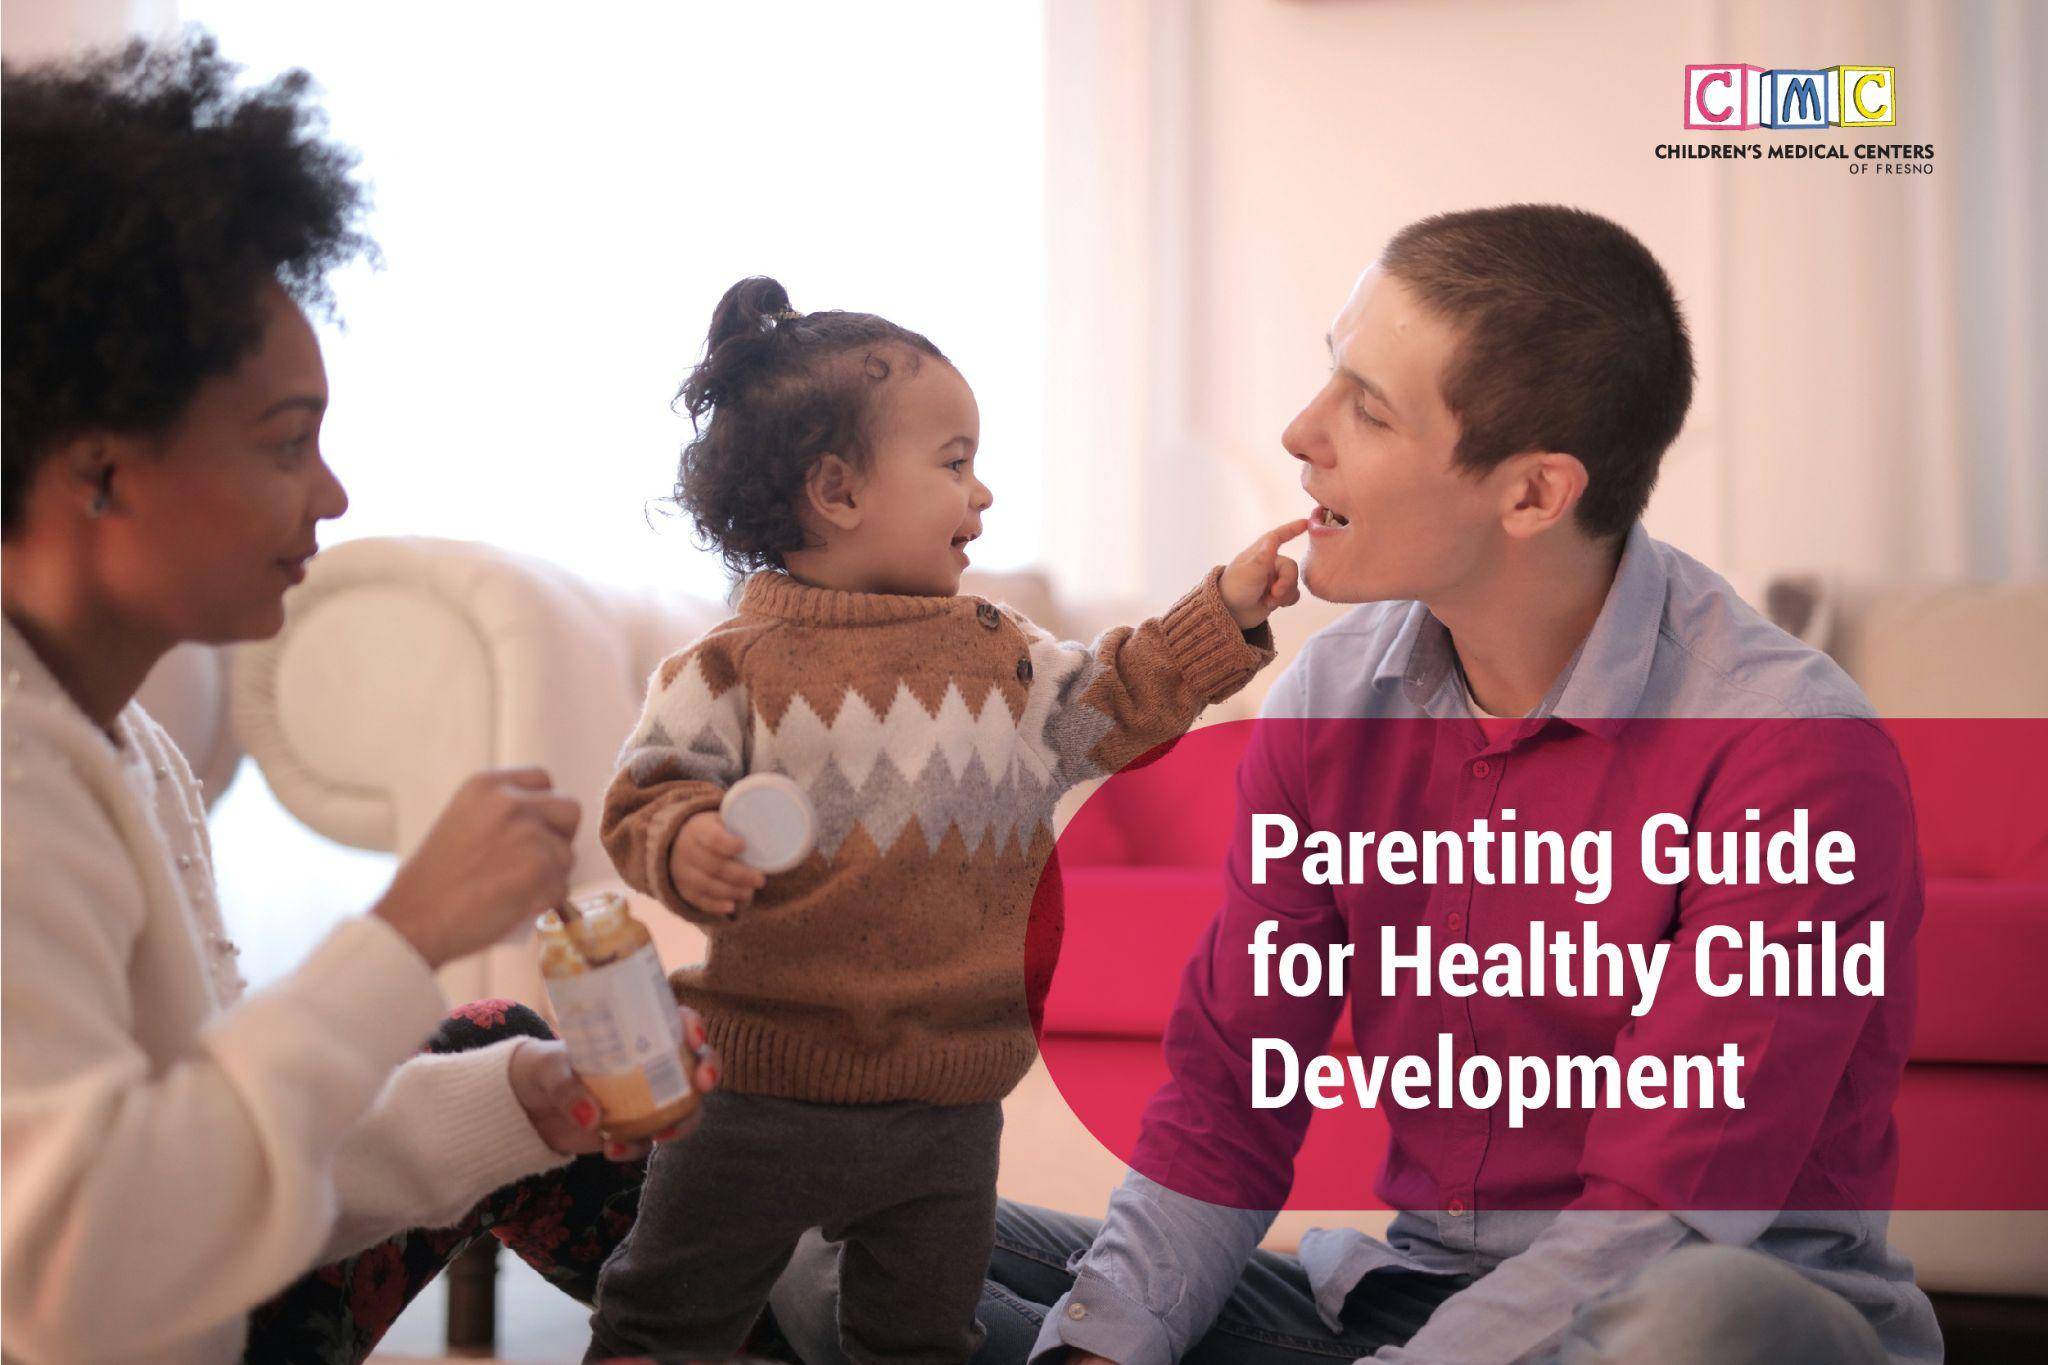 Parenting-Guide-for-Healthy-Child-Development